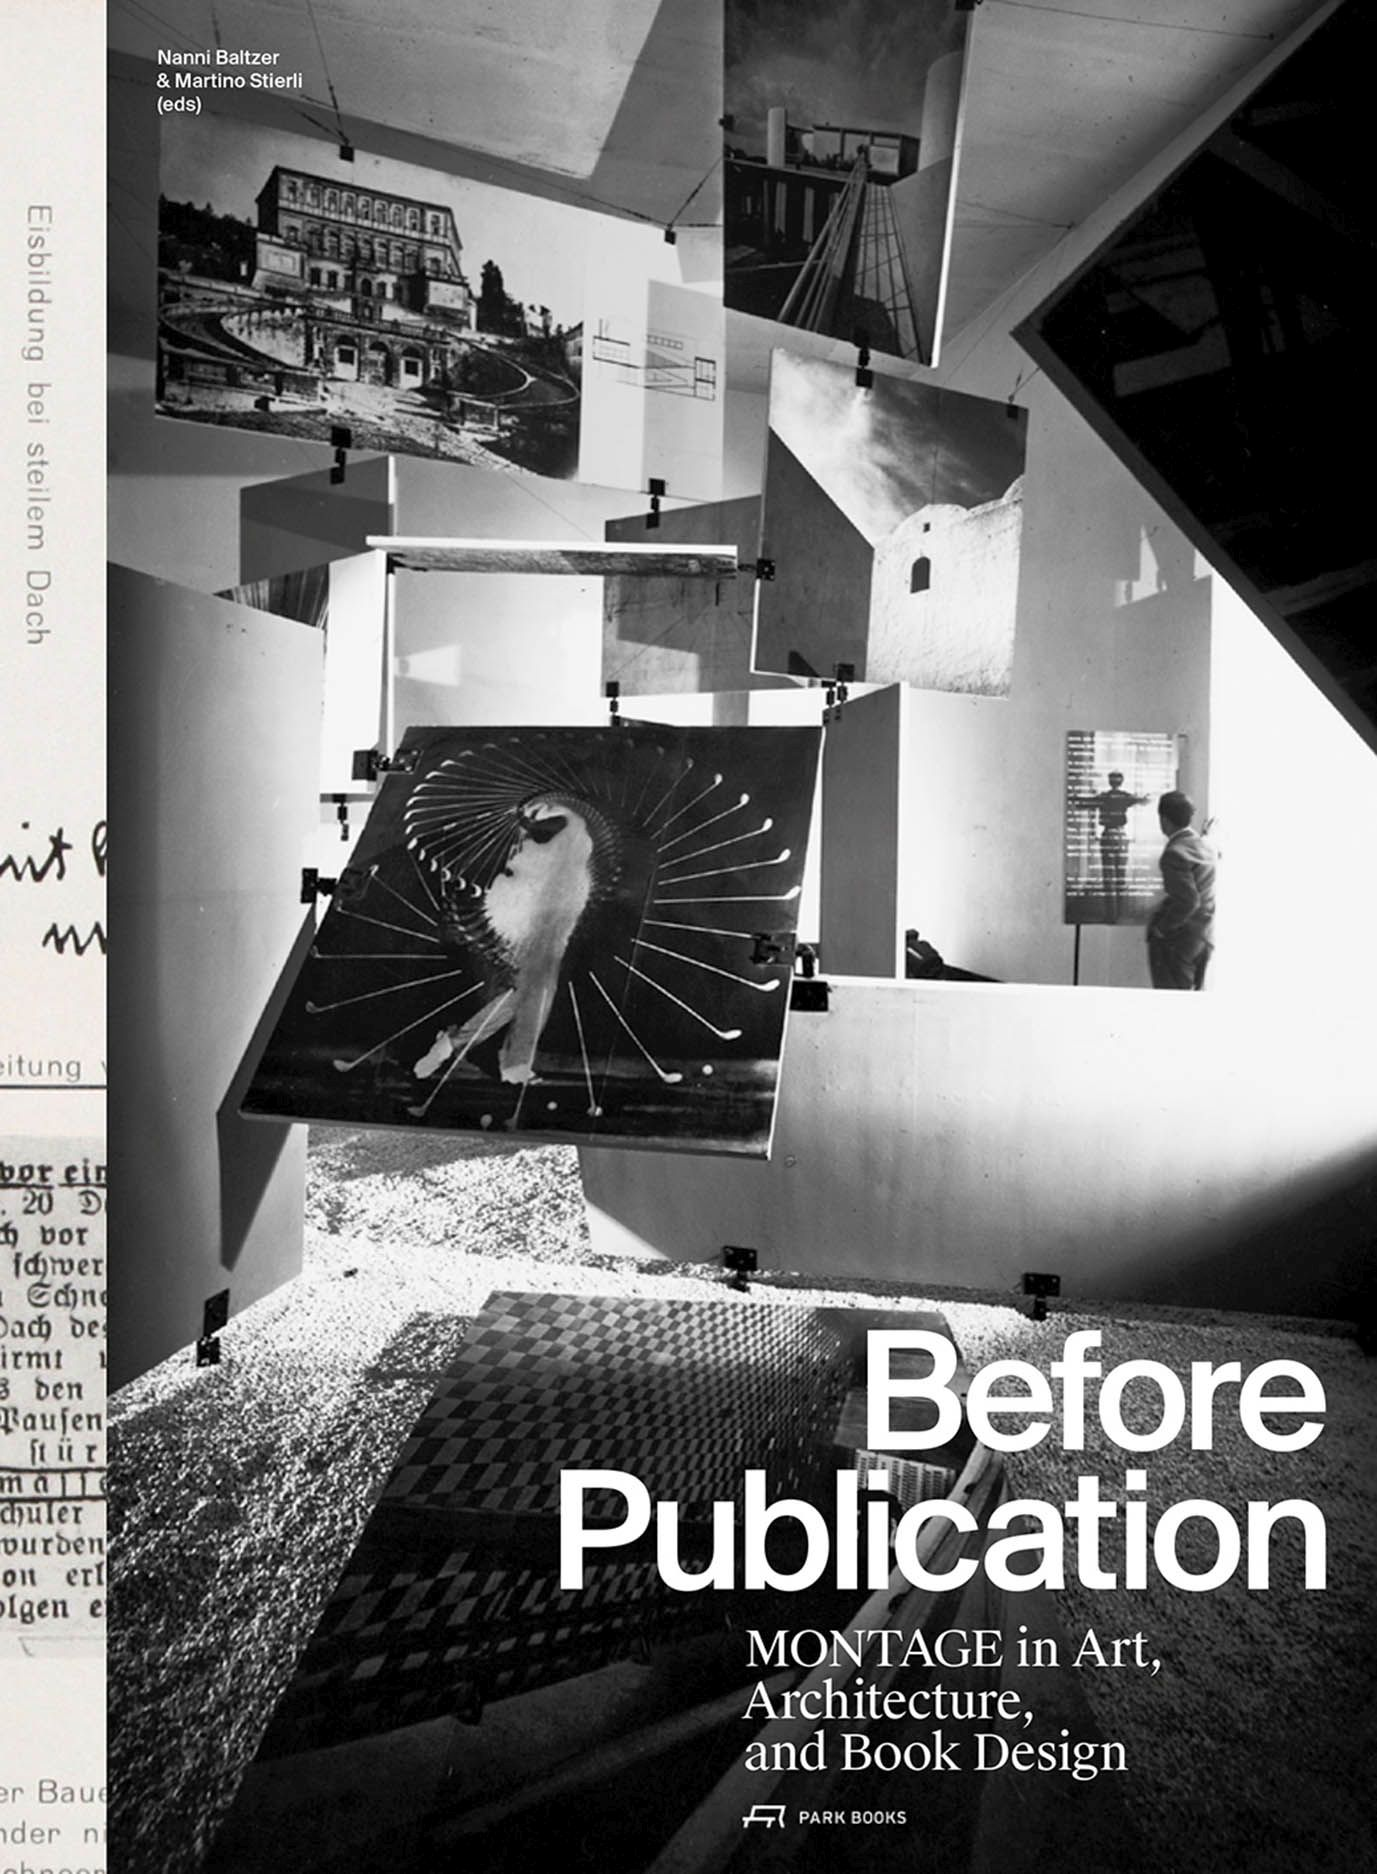 Before Publication: Montage in Art, Architecture, and Book Design. A Reader